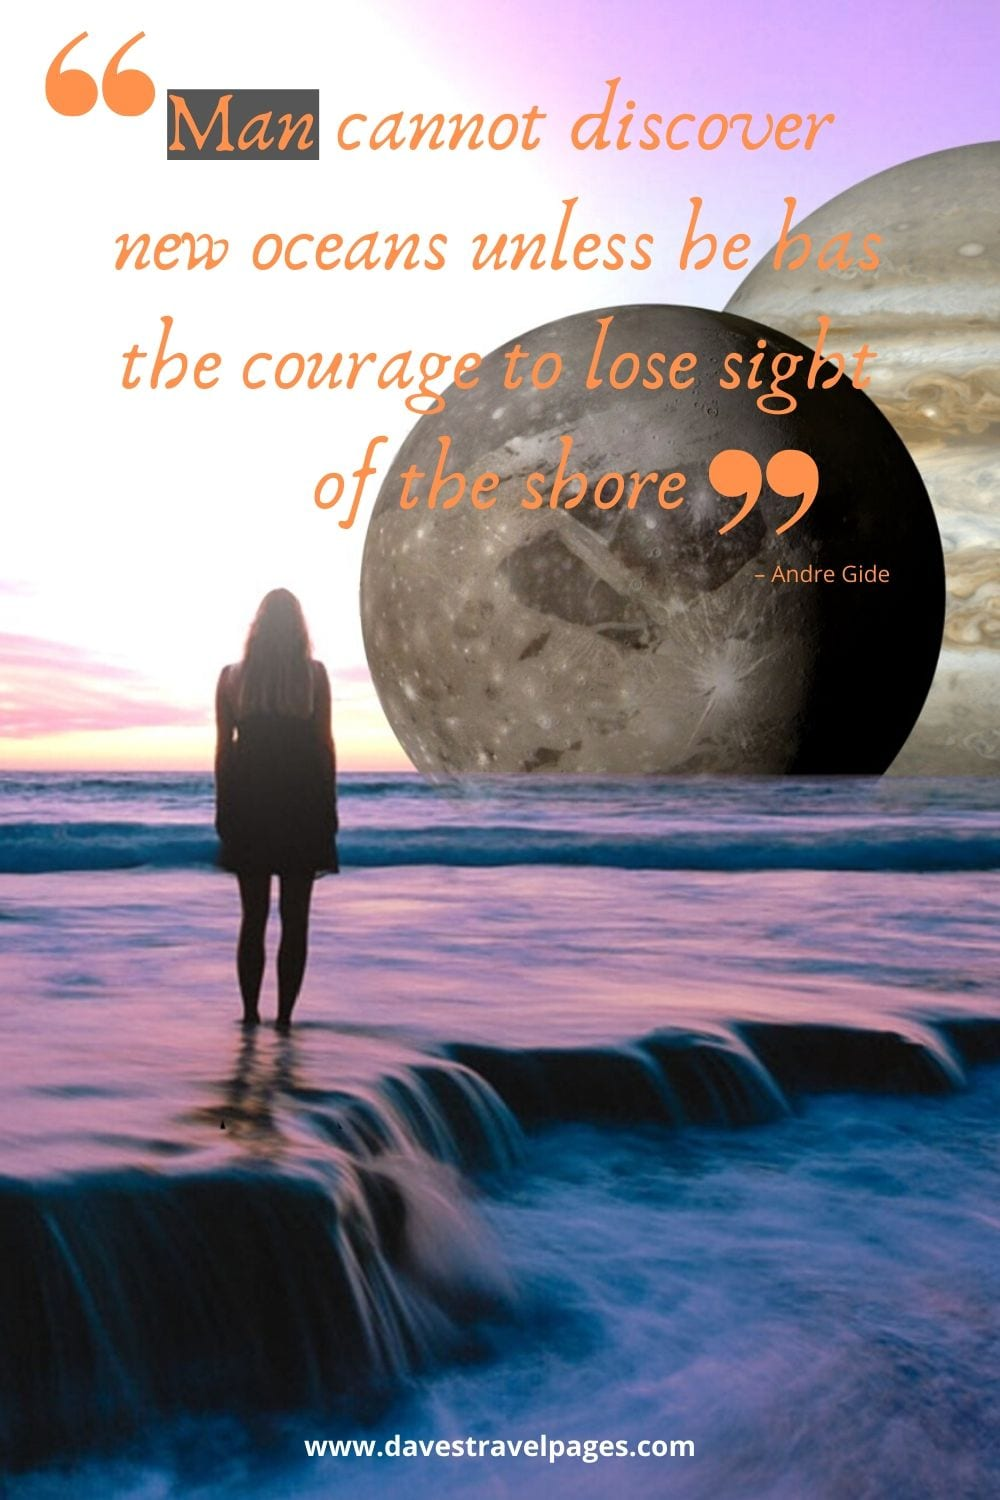 "Man cannot discover new oceans unless he has the courage to lose sight of the shore."" – Andre Gide"